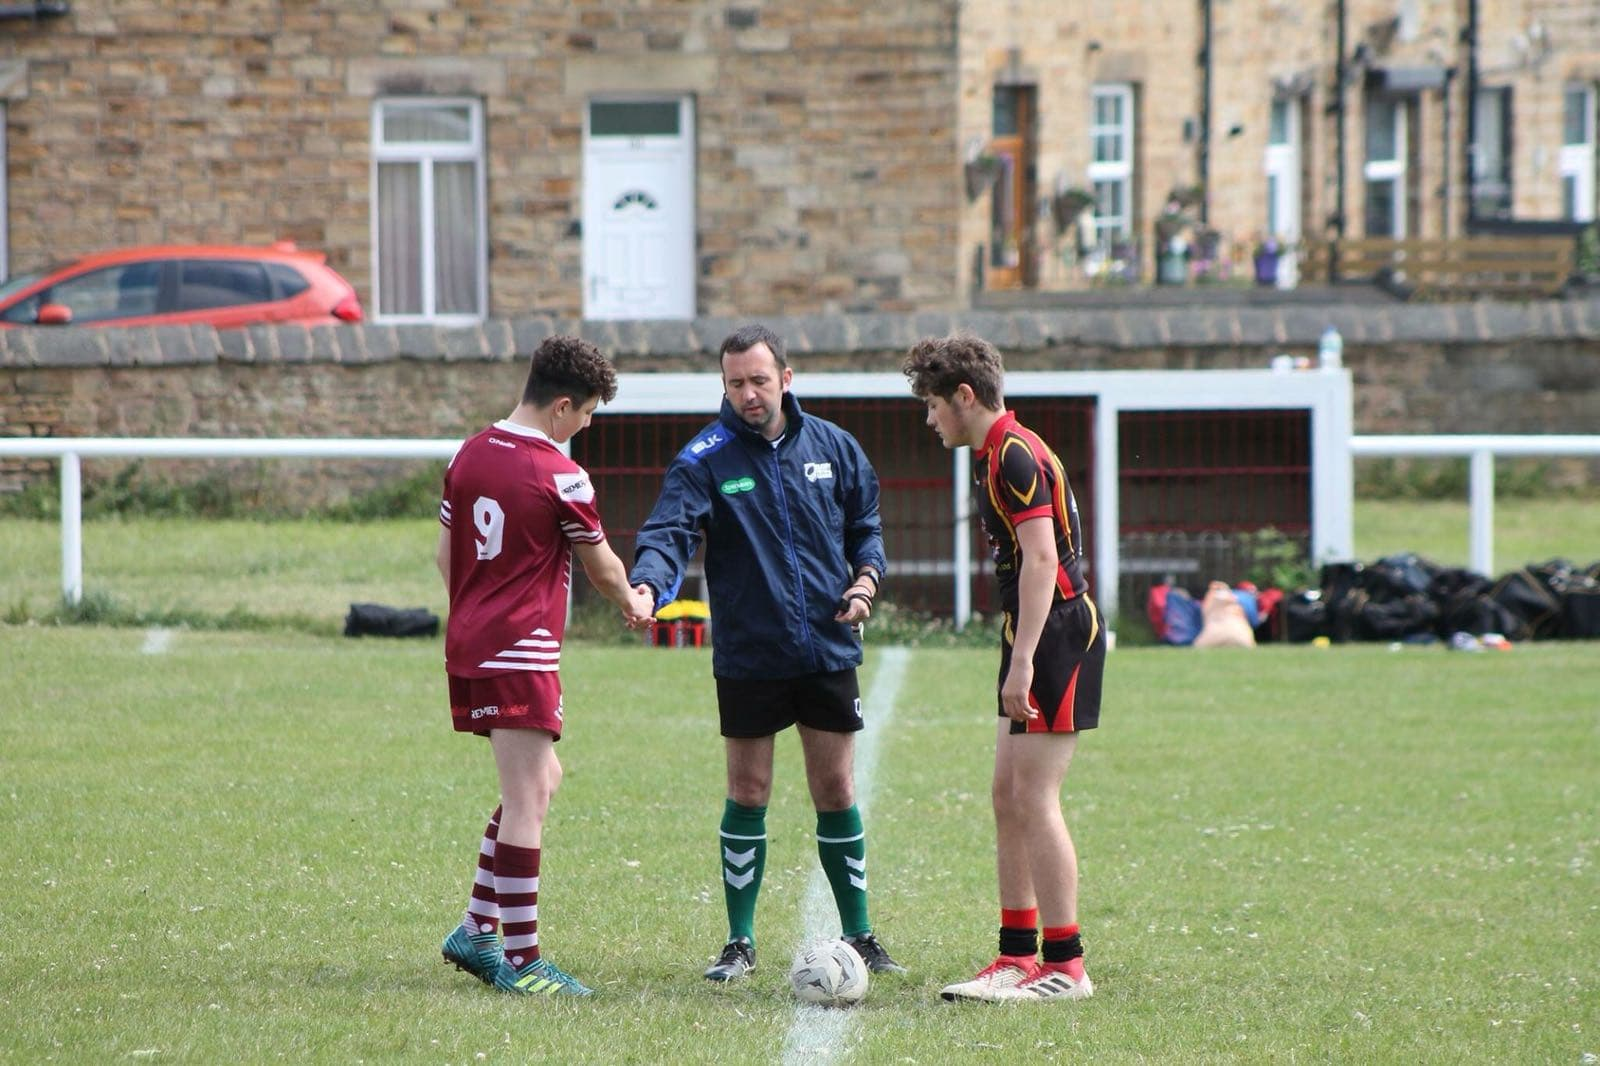 Jason Woodman holds many roles in the rugby community including refereeing across multiple levels.